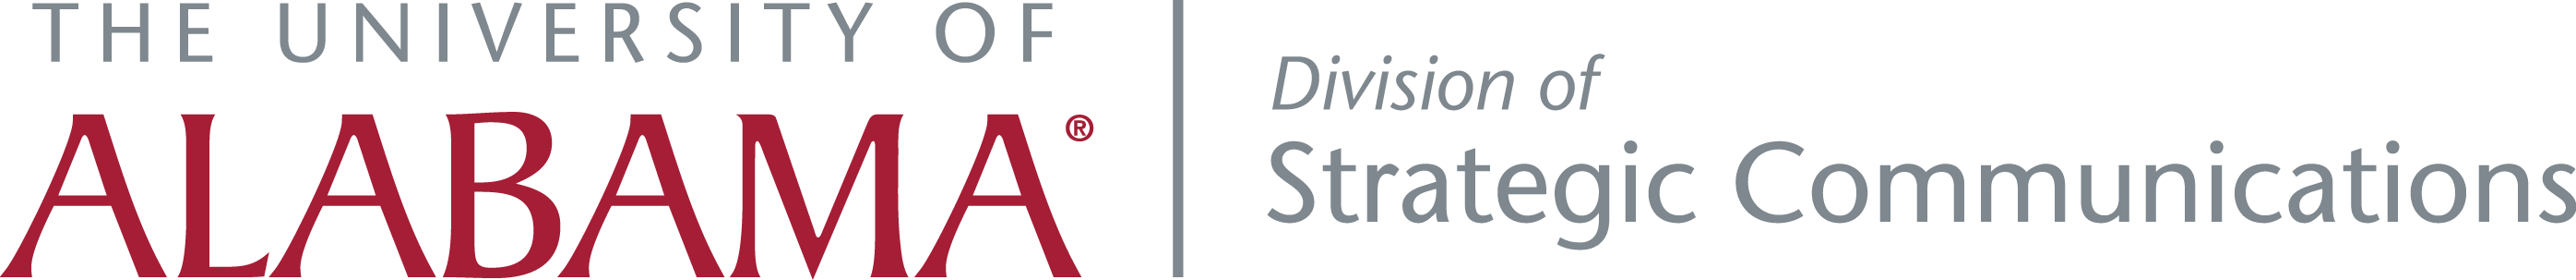 Division of Strategic Communications Identifier.